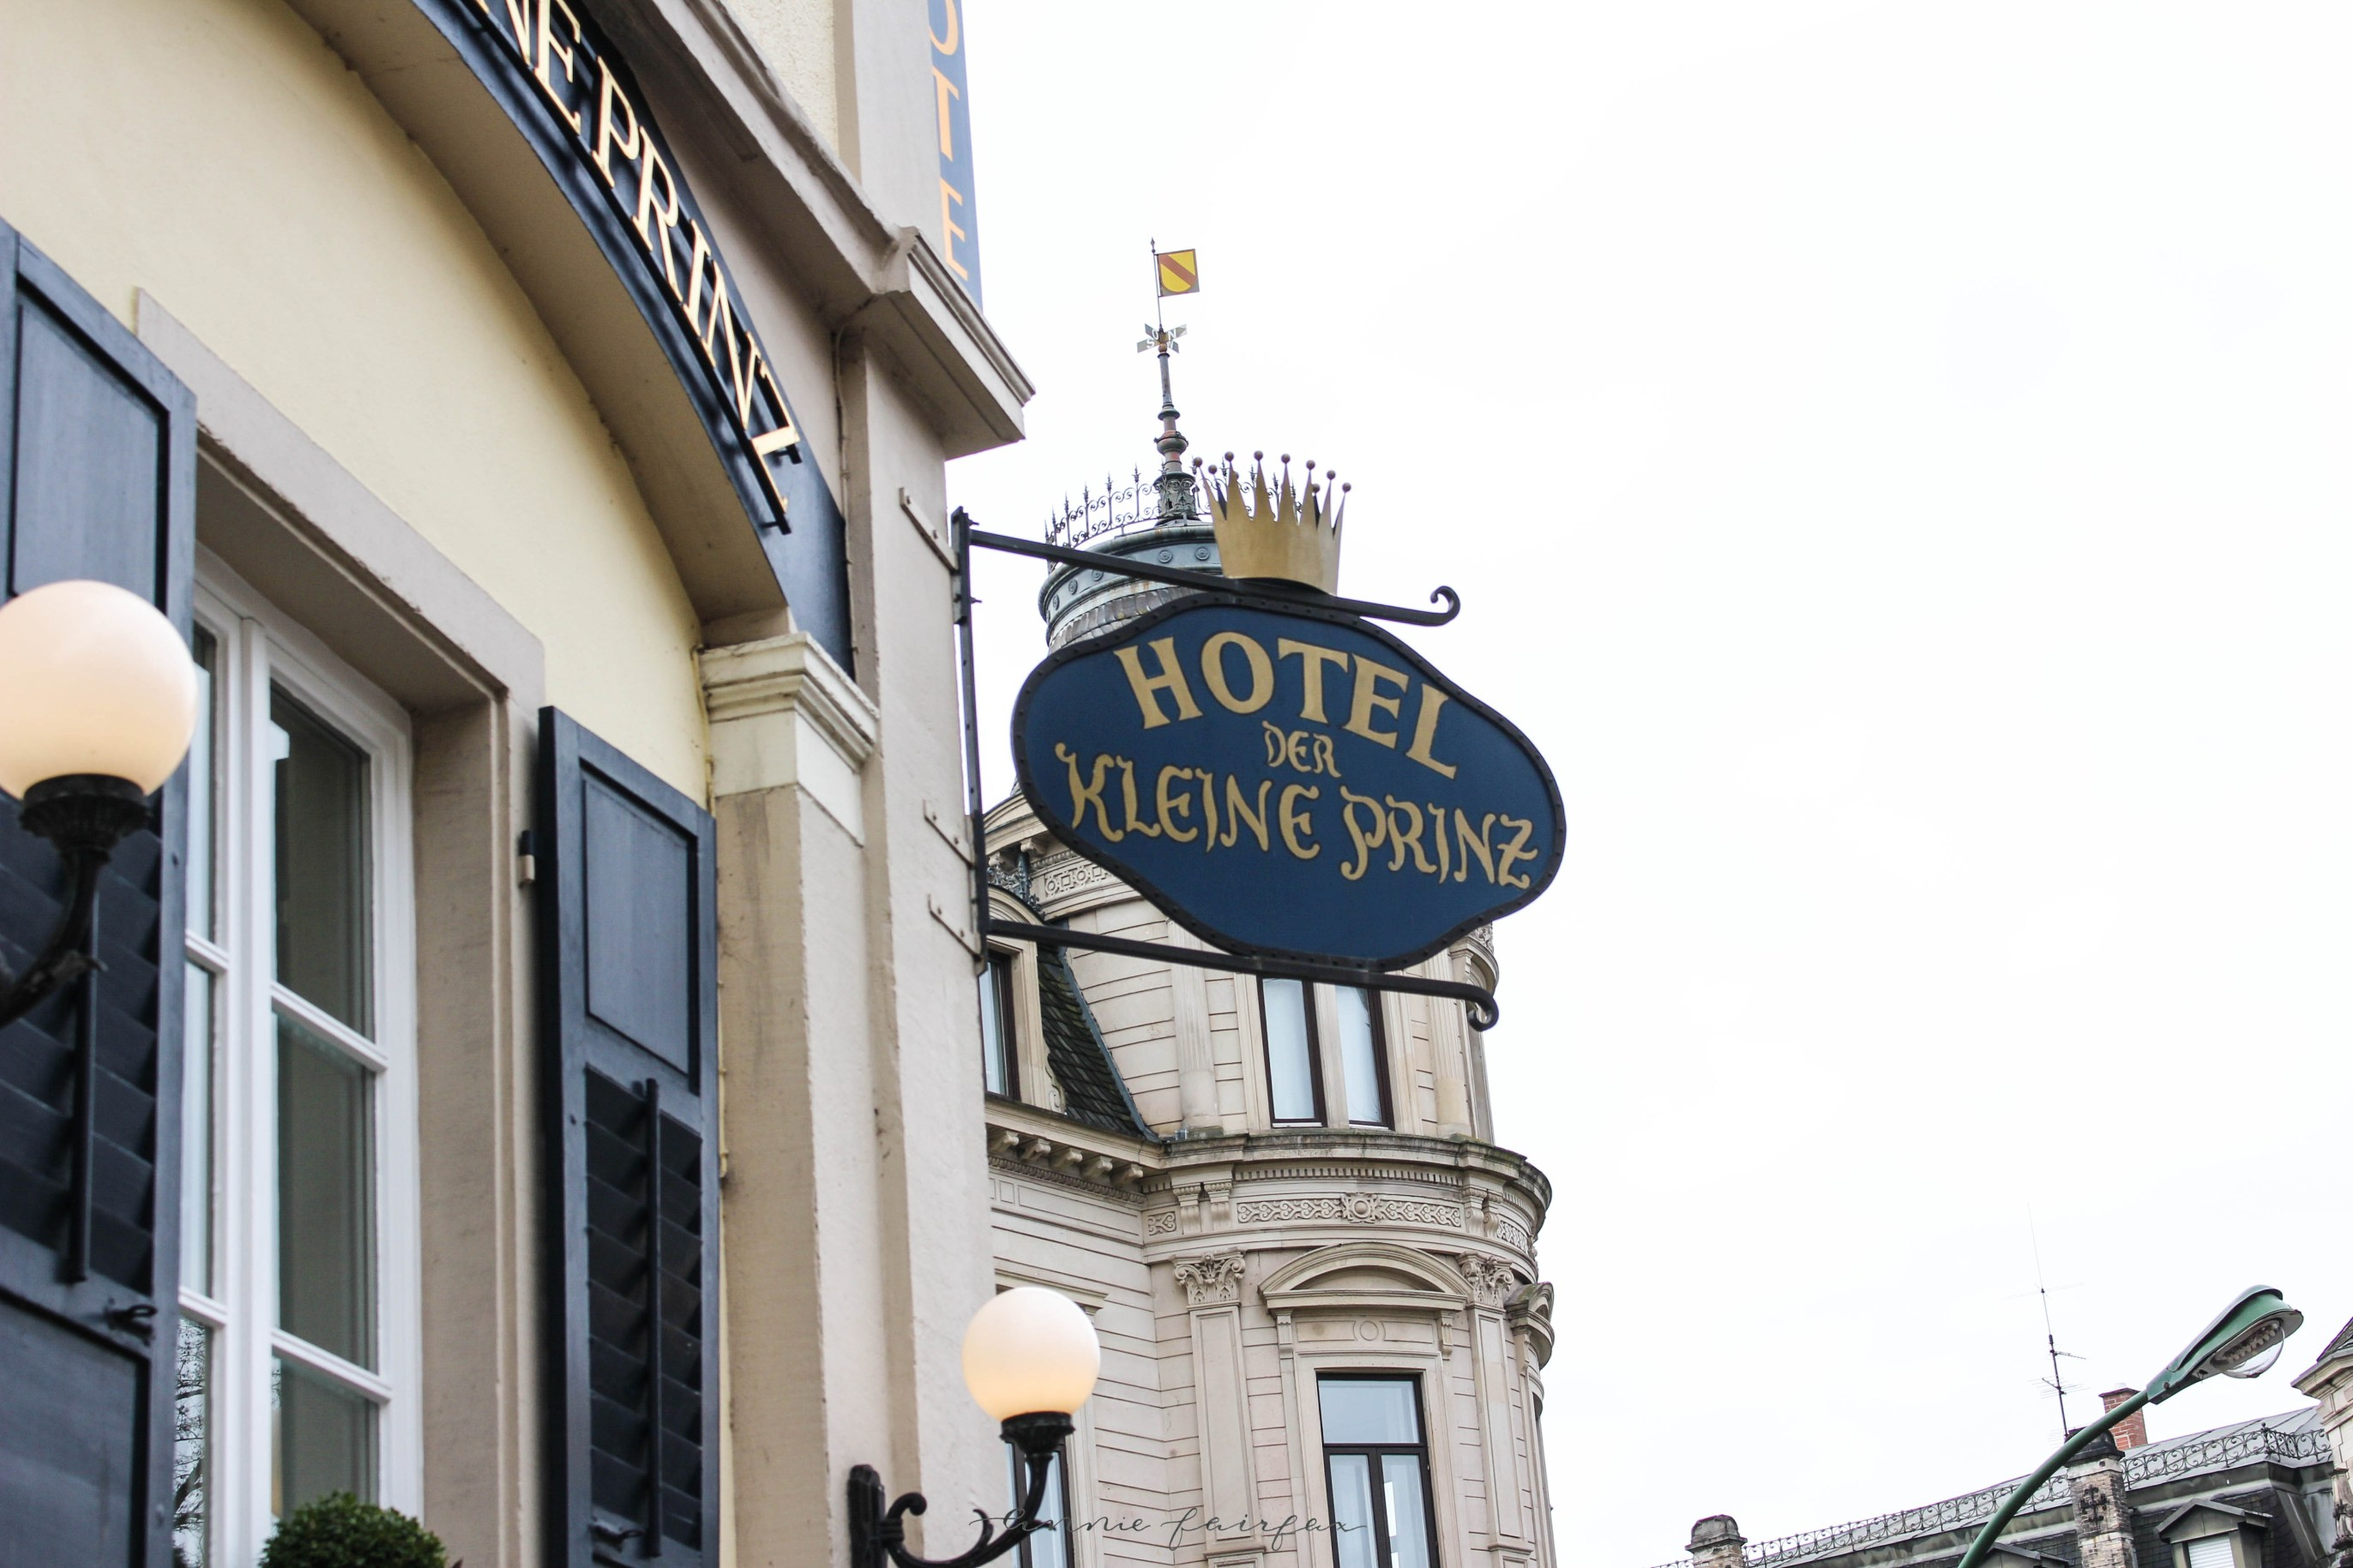 Luxury Hotels of the Word: Der Kleine Prinz Baden-Baden, Germany